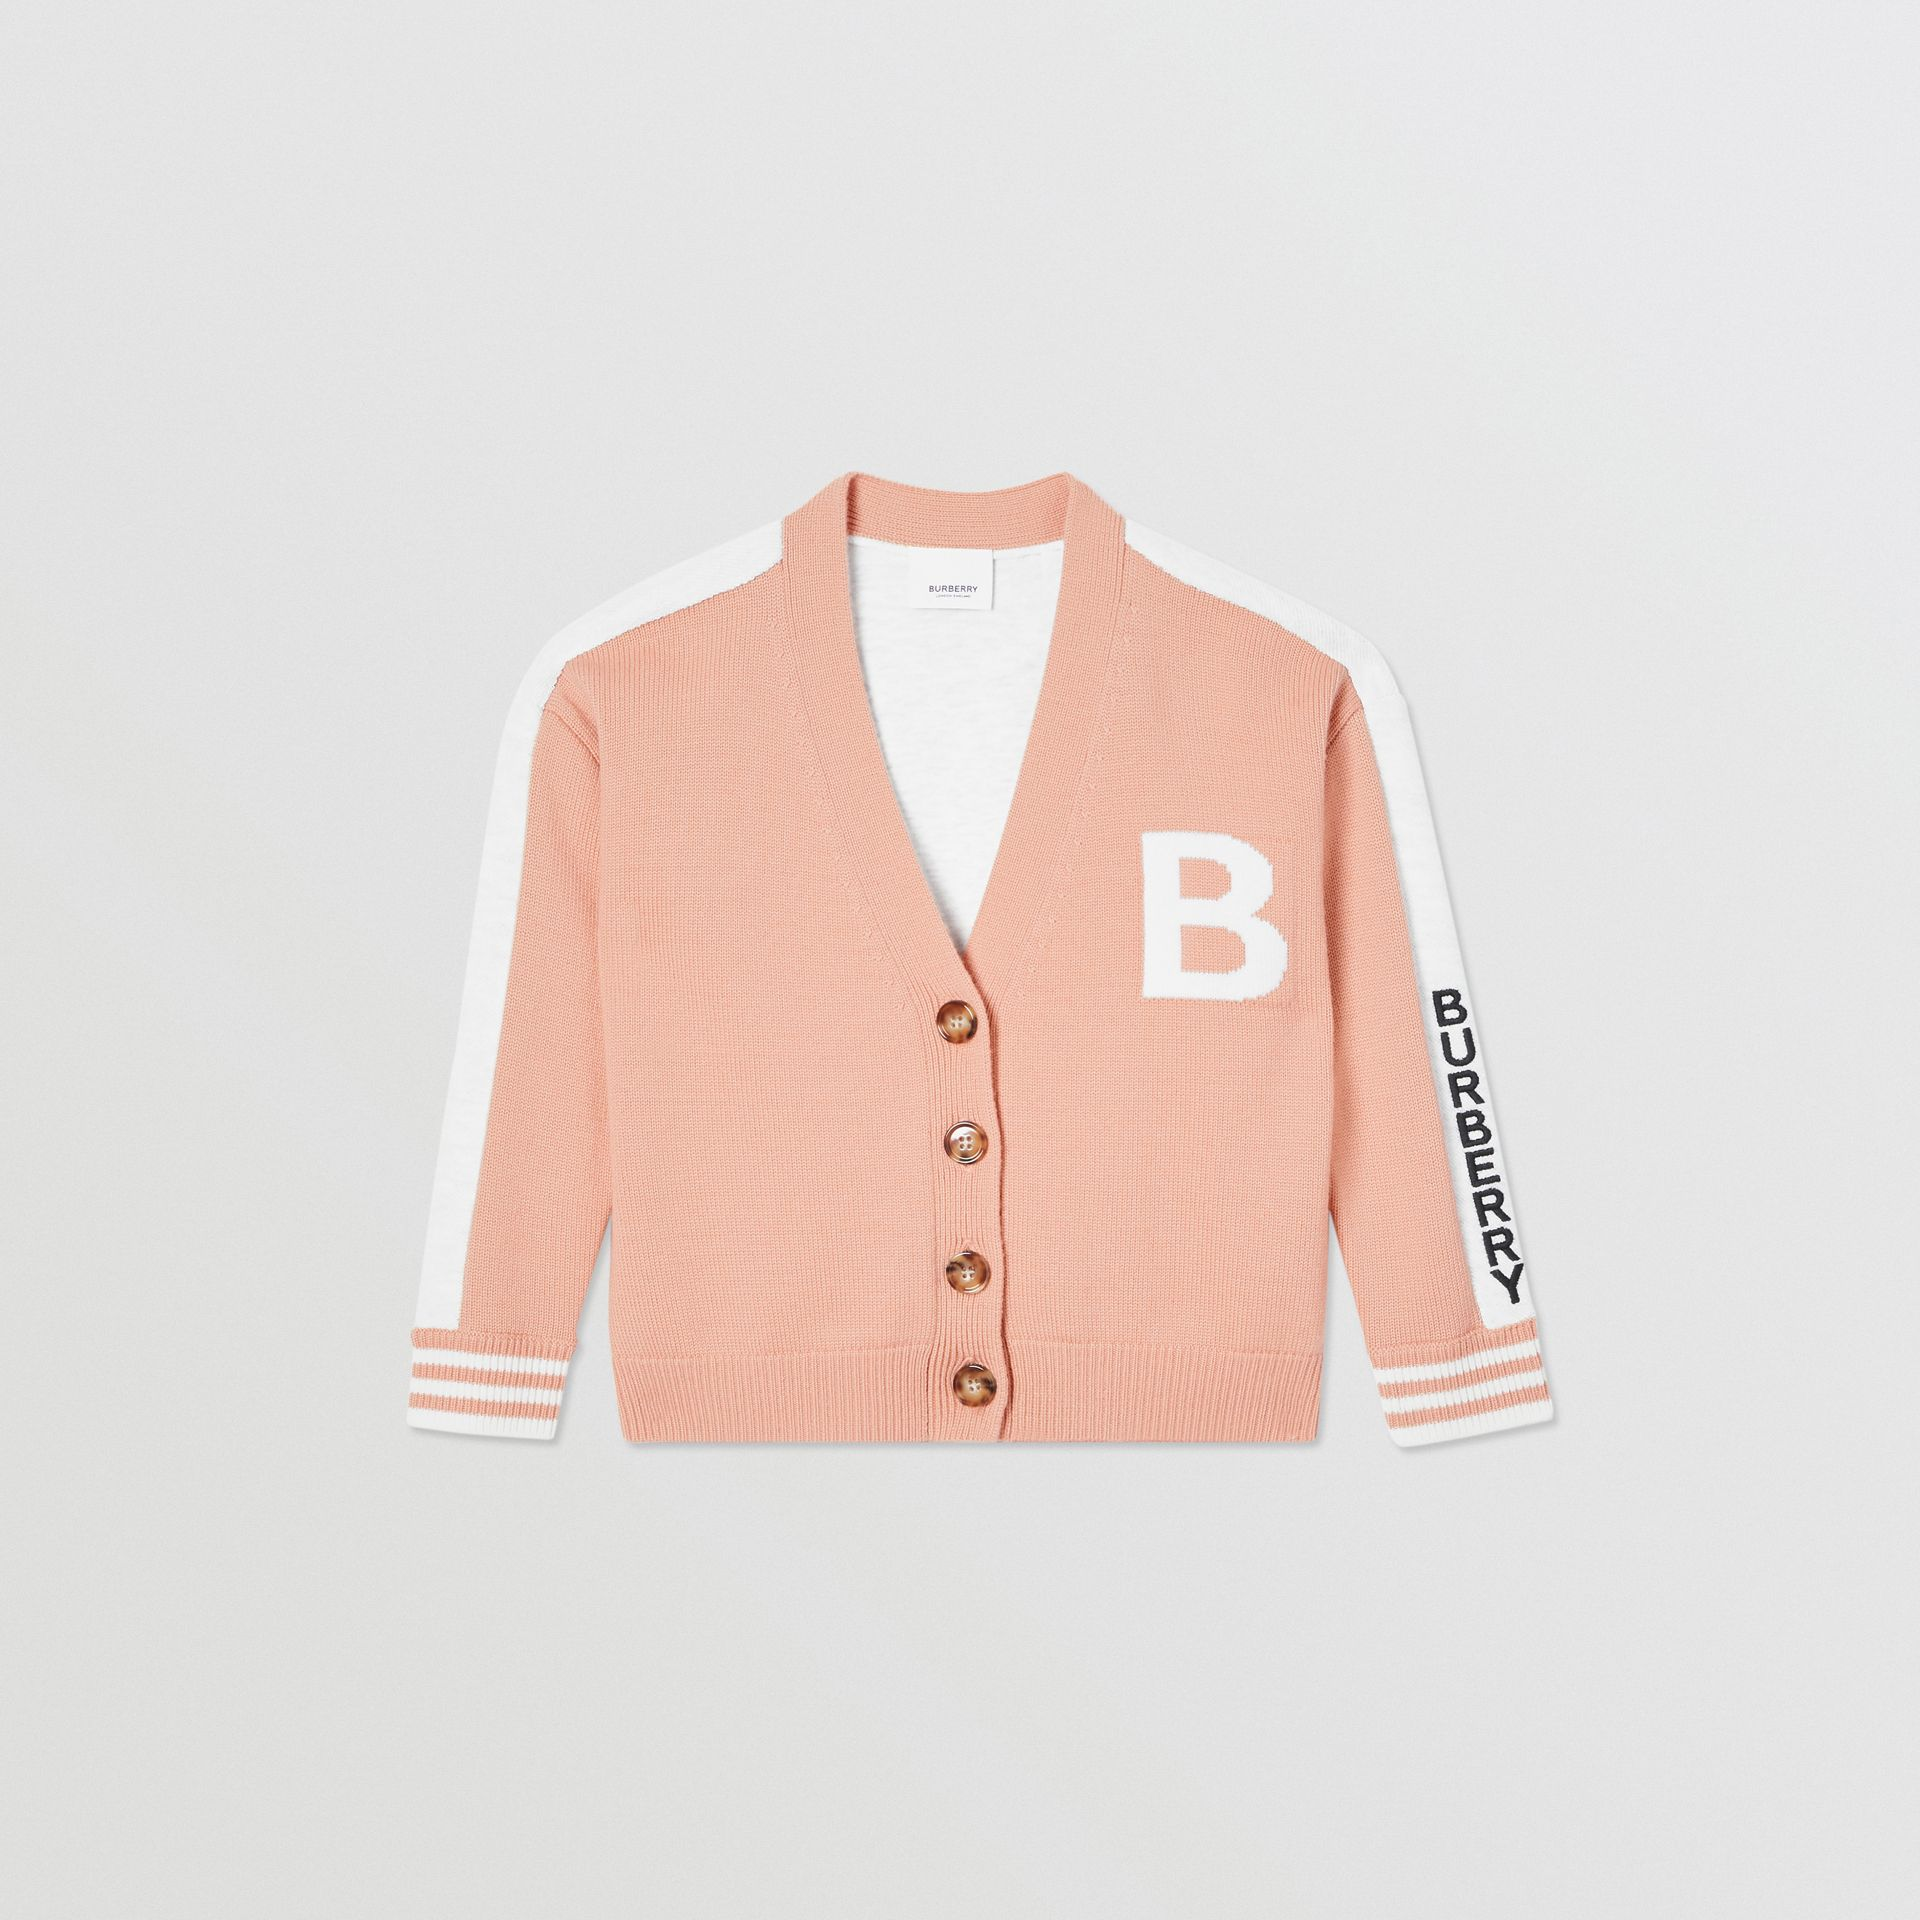 B Motif Merino Wool Jacquard Cardigan in Peach - Girl | Burberry - gallery image 0